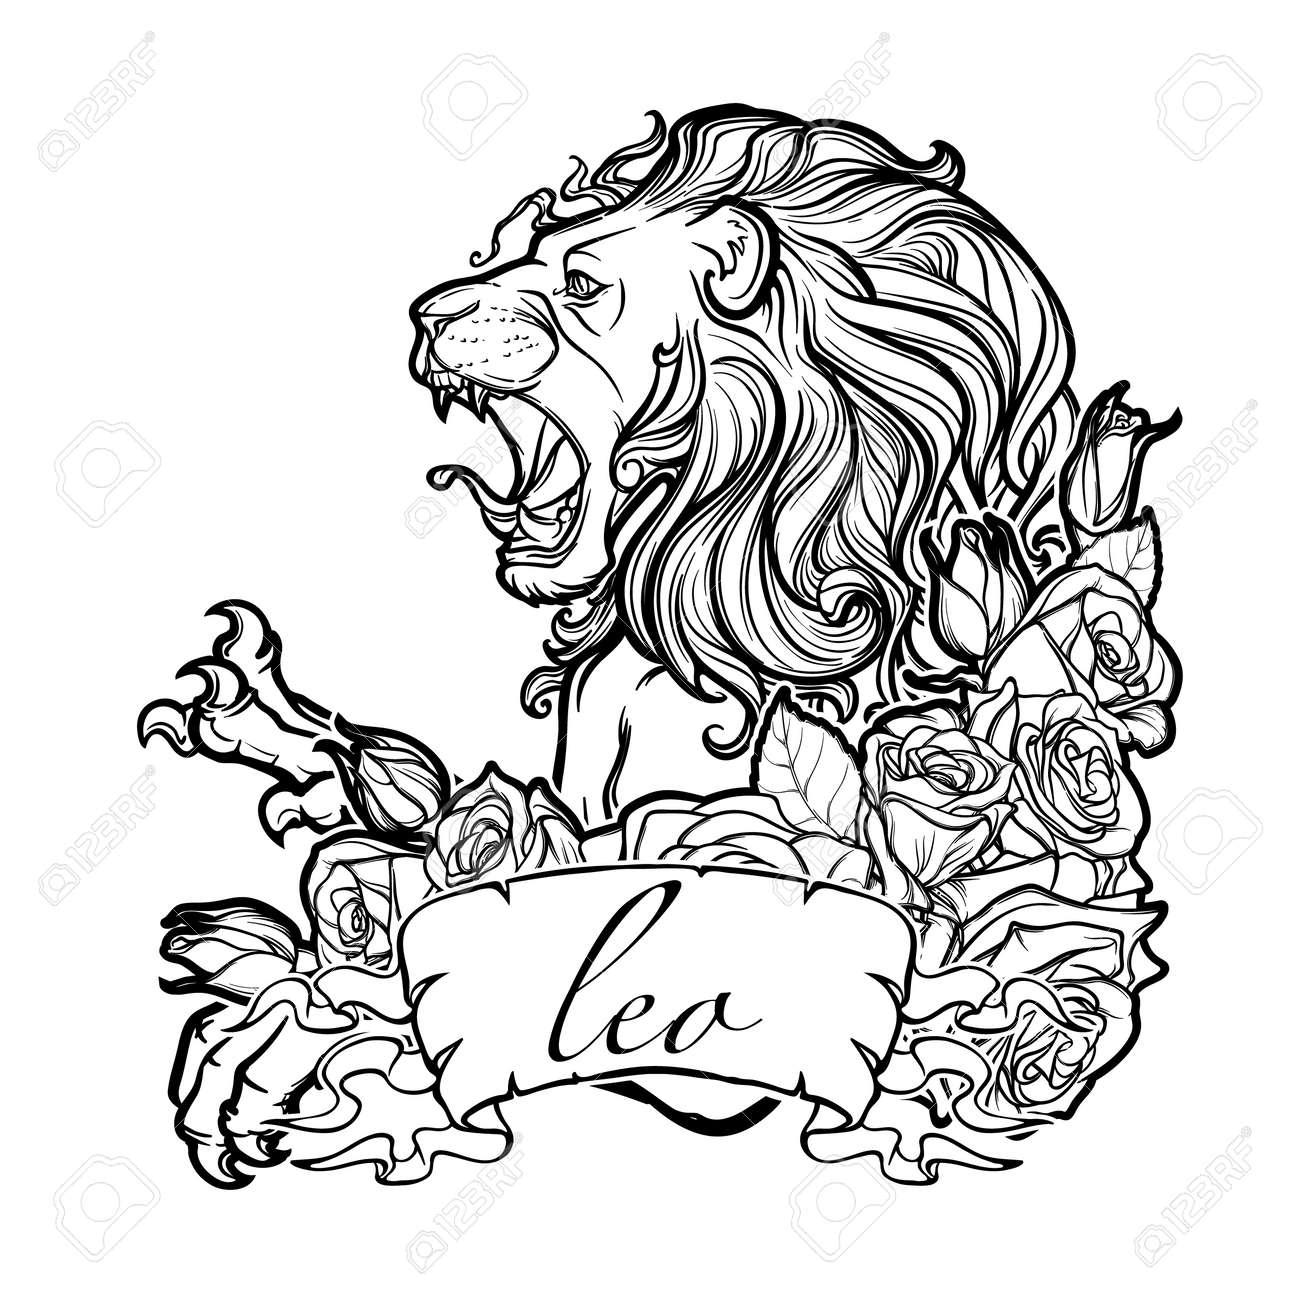 Zodiac Sign Of Leo With A Decorative Frame Of Roses. Astrology ...